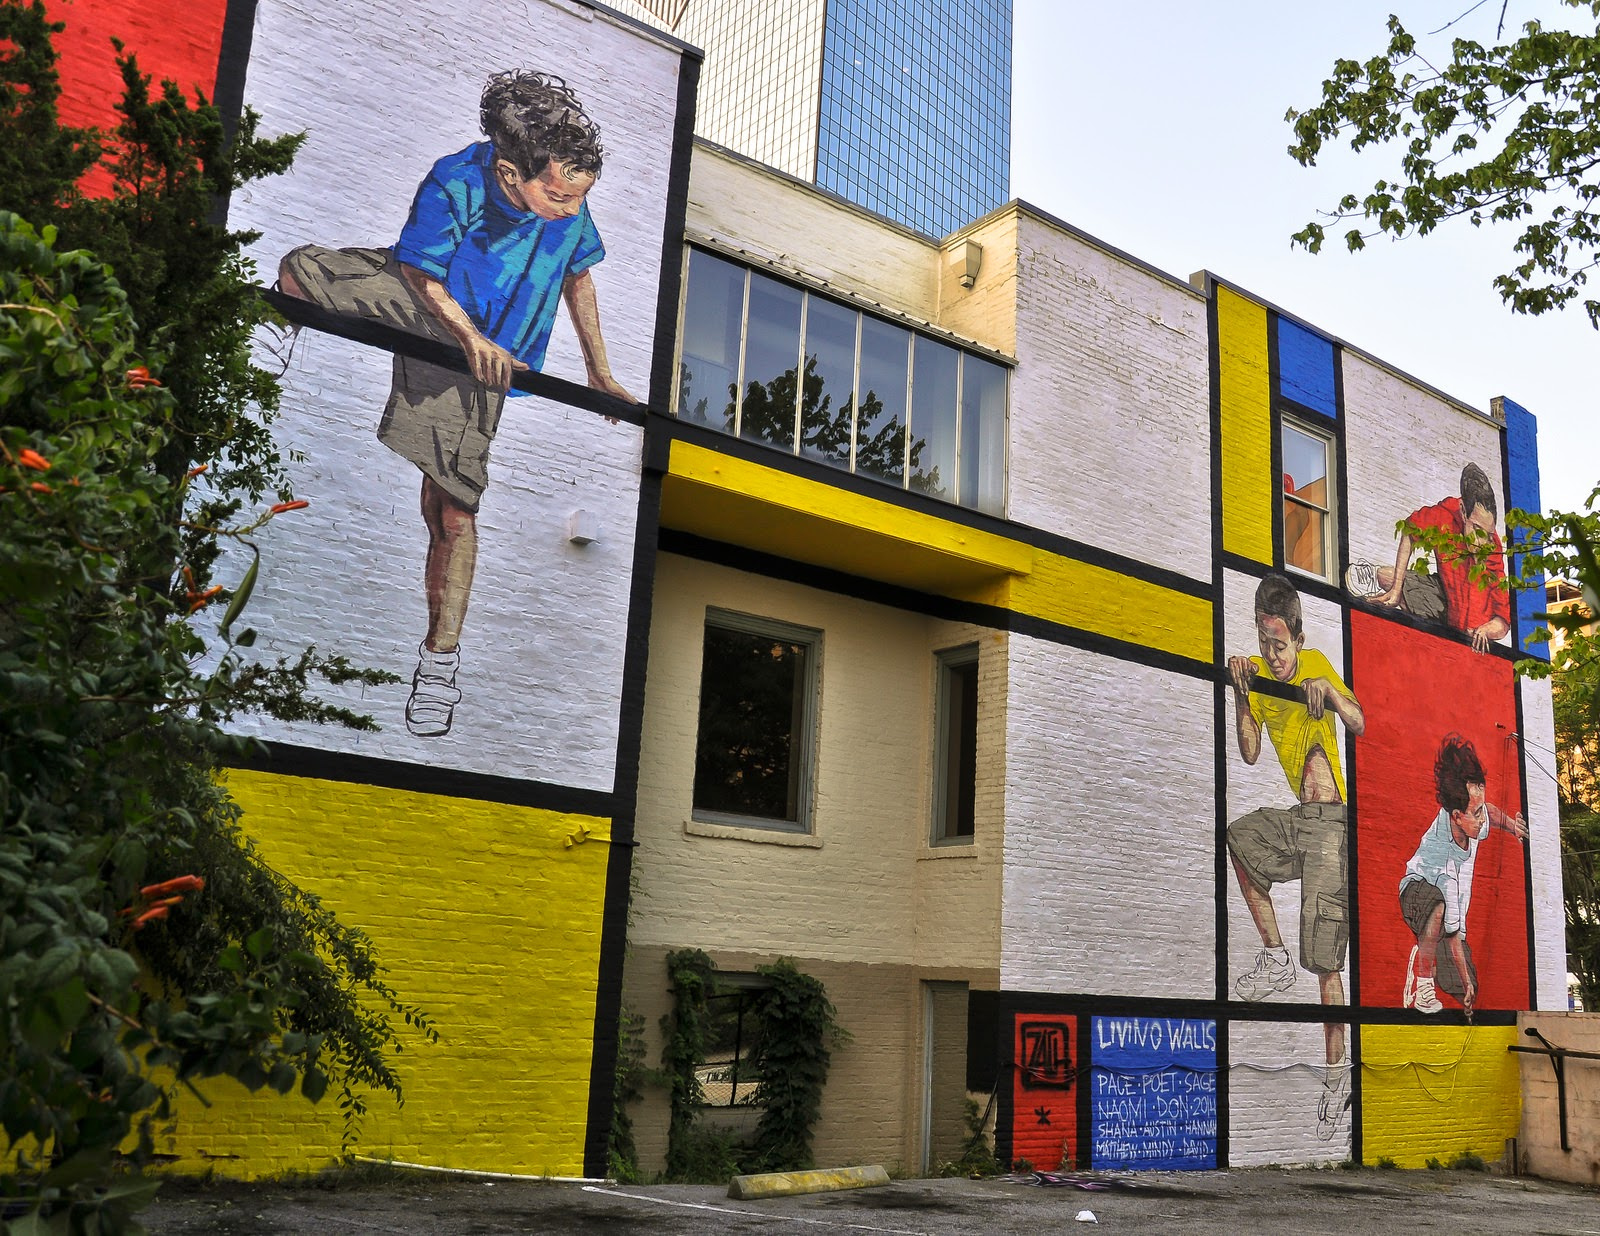 Ernest Zacharevic was also invited in the Living Walls 2014 conference where he worked his magic on this massive new piece.